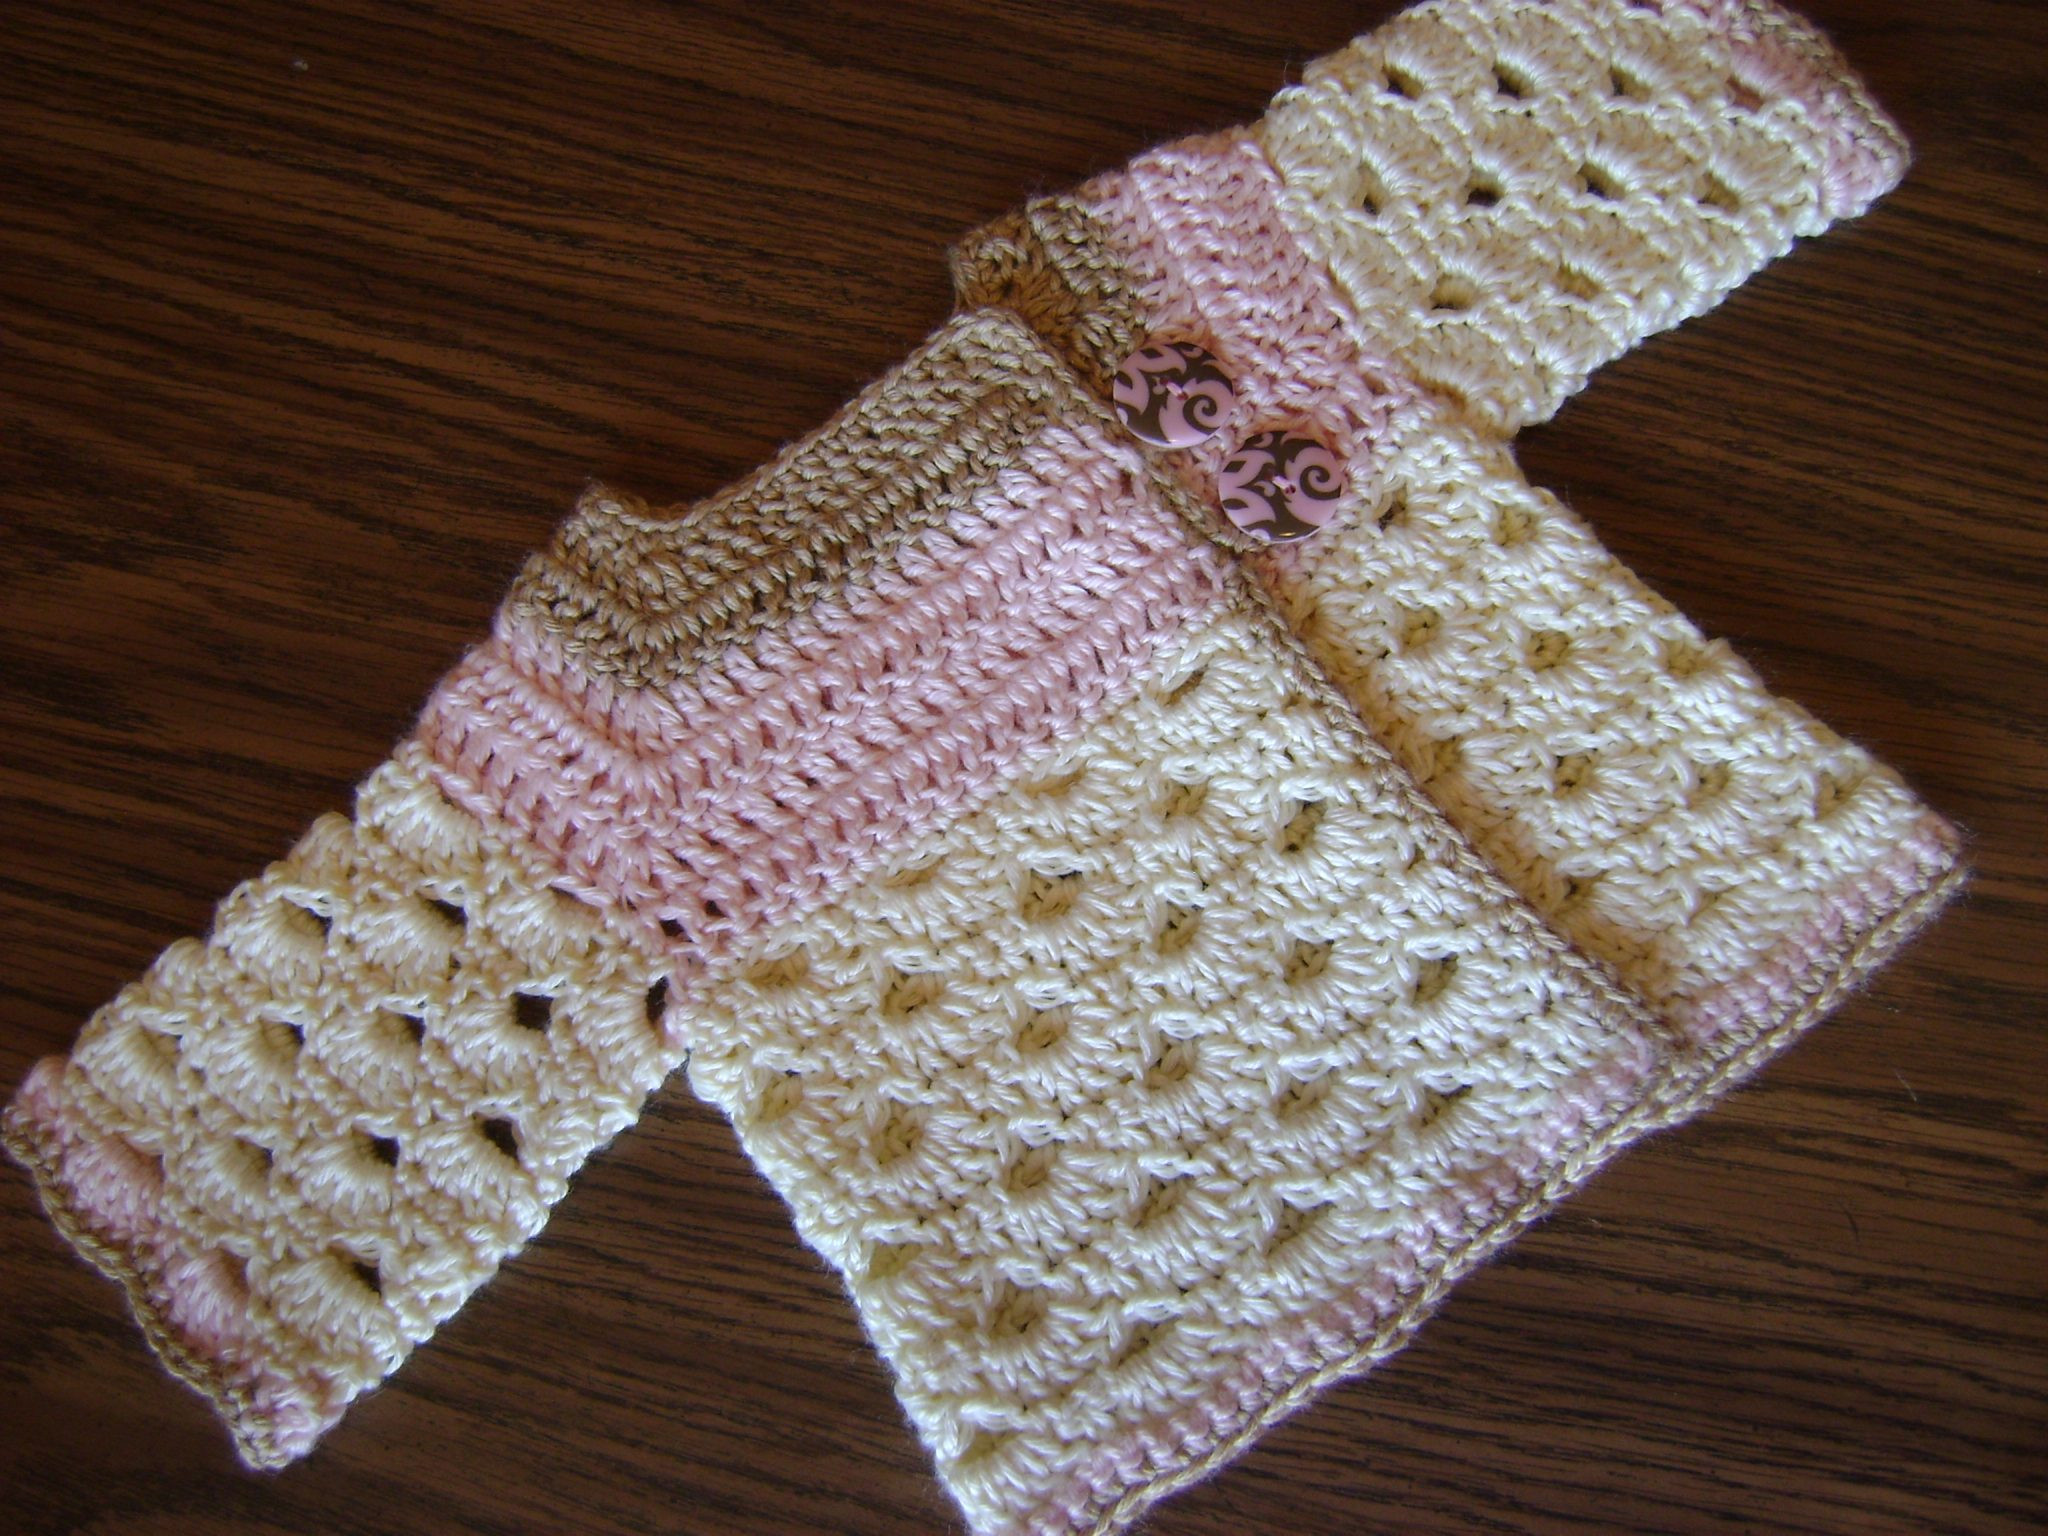 Awesome Easy Crocheted Baby Sweater Patterns Online Crochet and Free Crochet toddler Sweater Patterns Of Charming 50 Models Free Crochet toddler Sweater Patterns